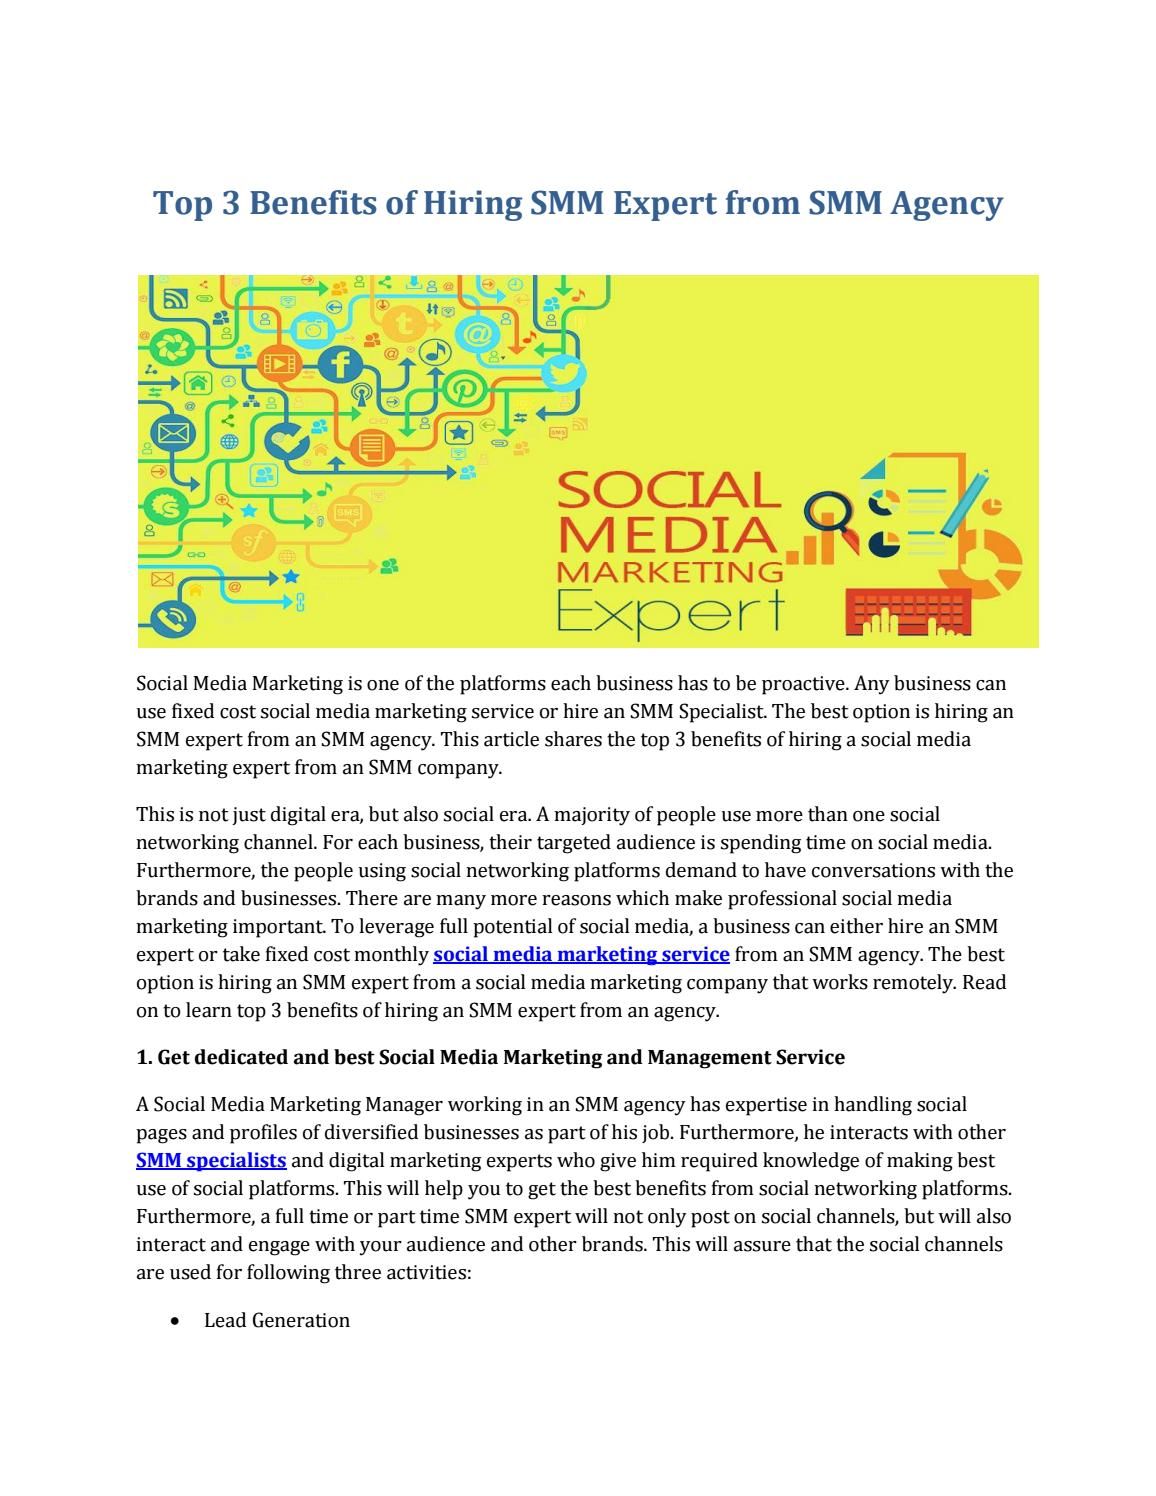 Top 3 Benefits Of Hiring Smm Expert From Smm Agency By Digitalmarketersindia Issuu